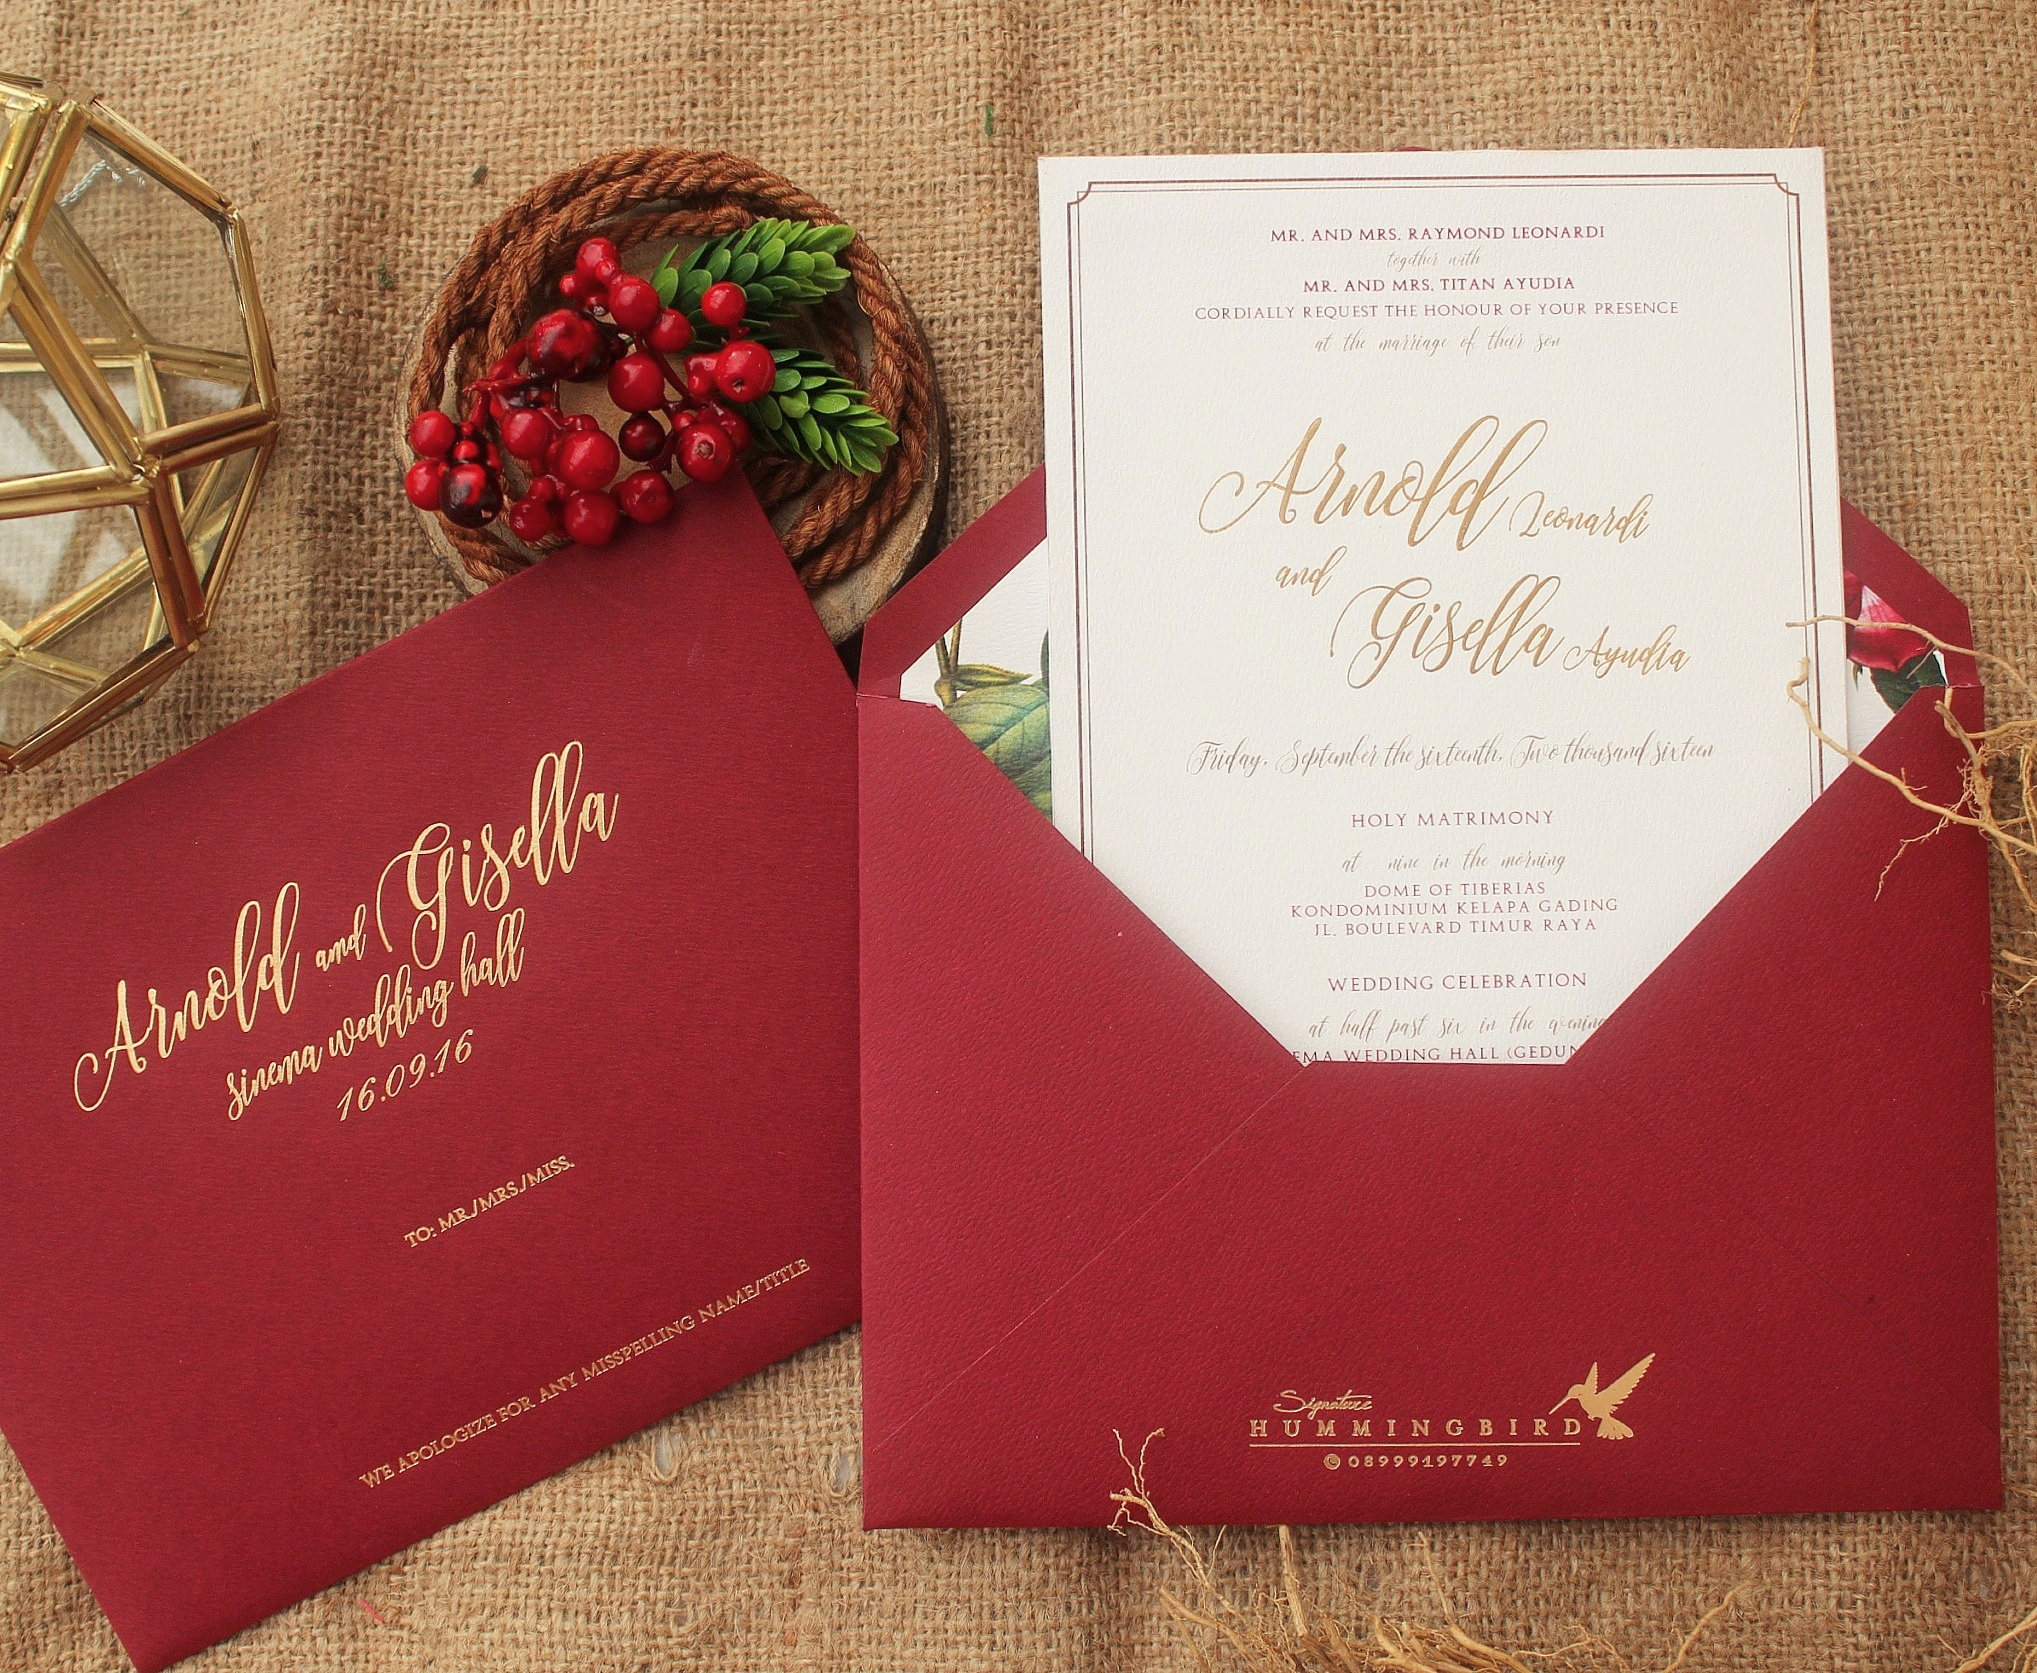 Hummingbird Studio | Wedding Invitations in Jakarta | Bridestory.com